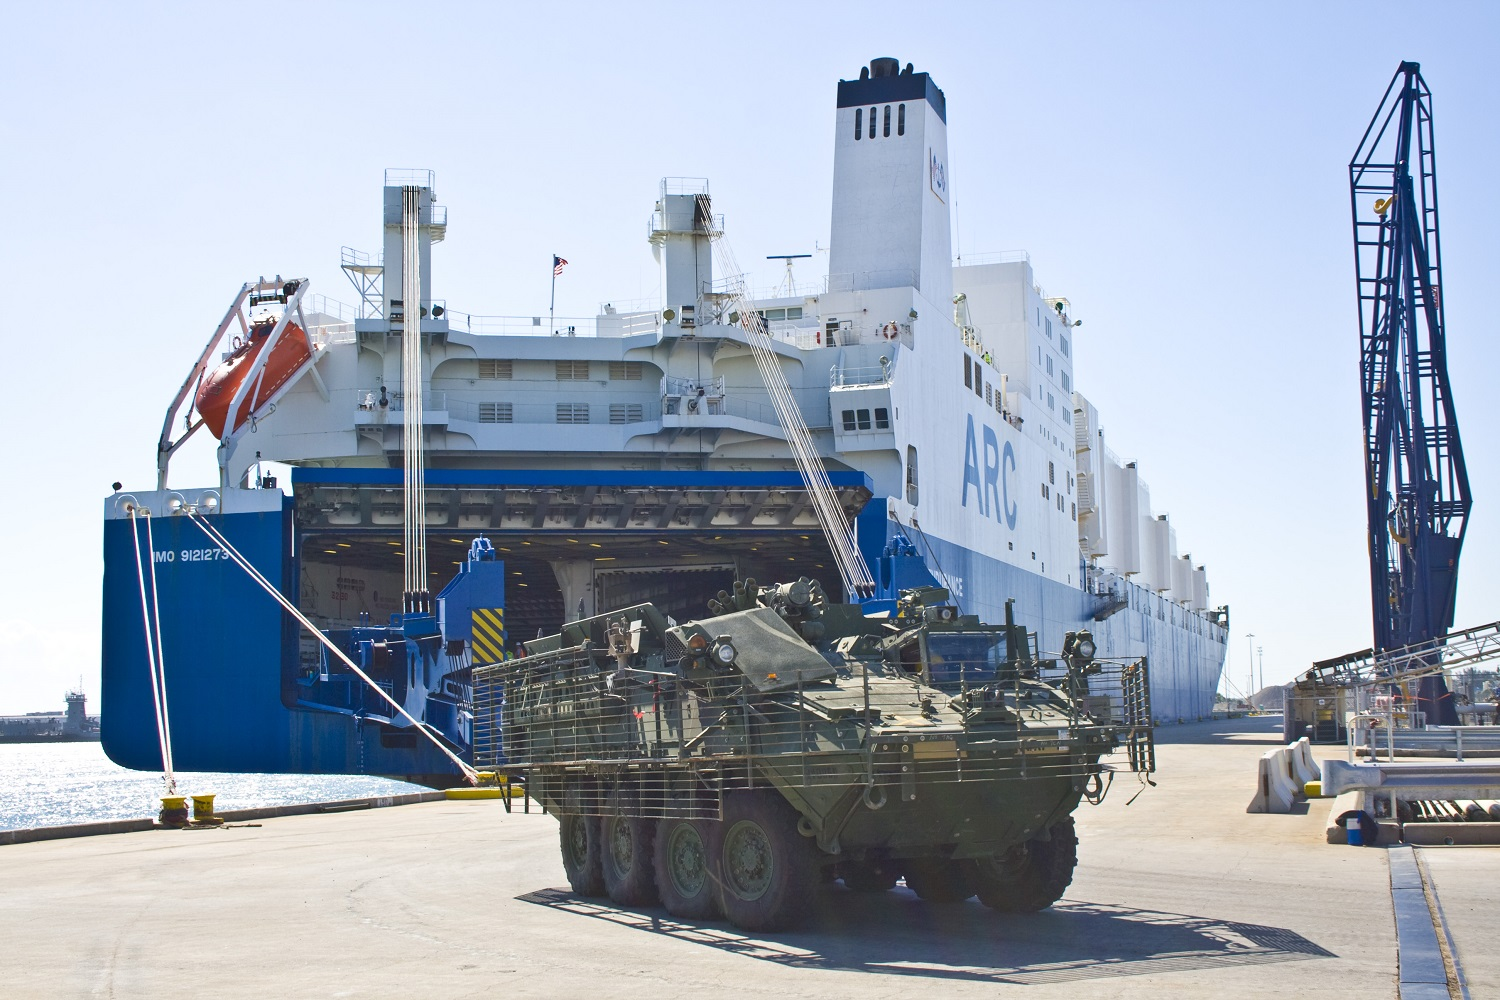 American Roll-On Roll-Off Carrier Awarded Contract Carriers Offering Regularly Scheduled Commercial Service